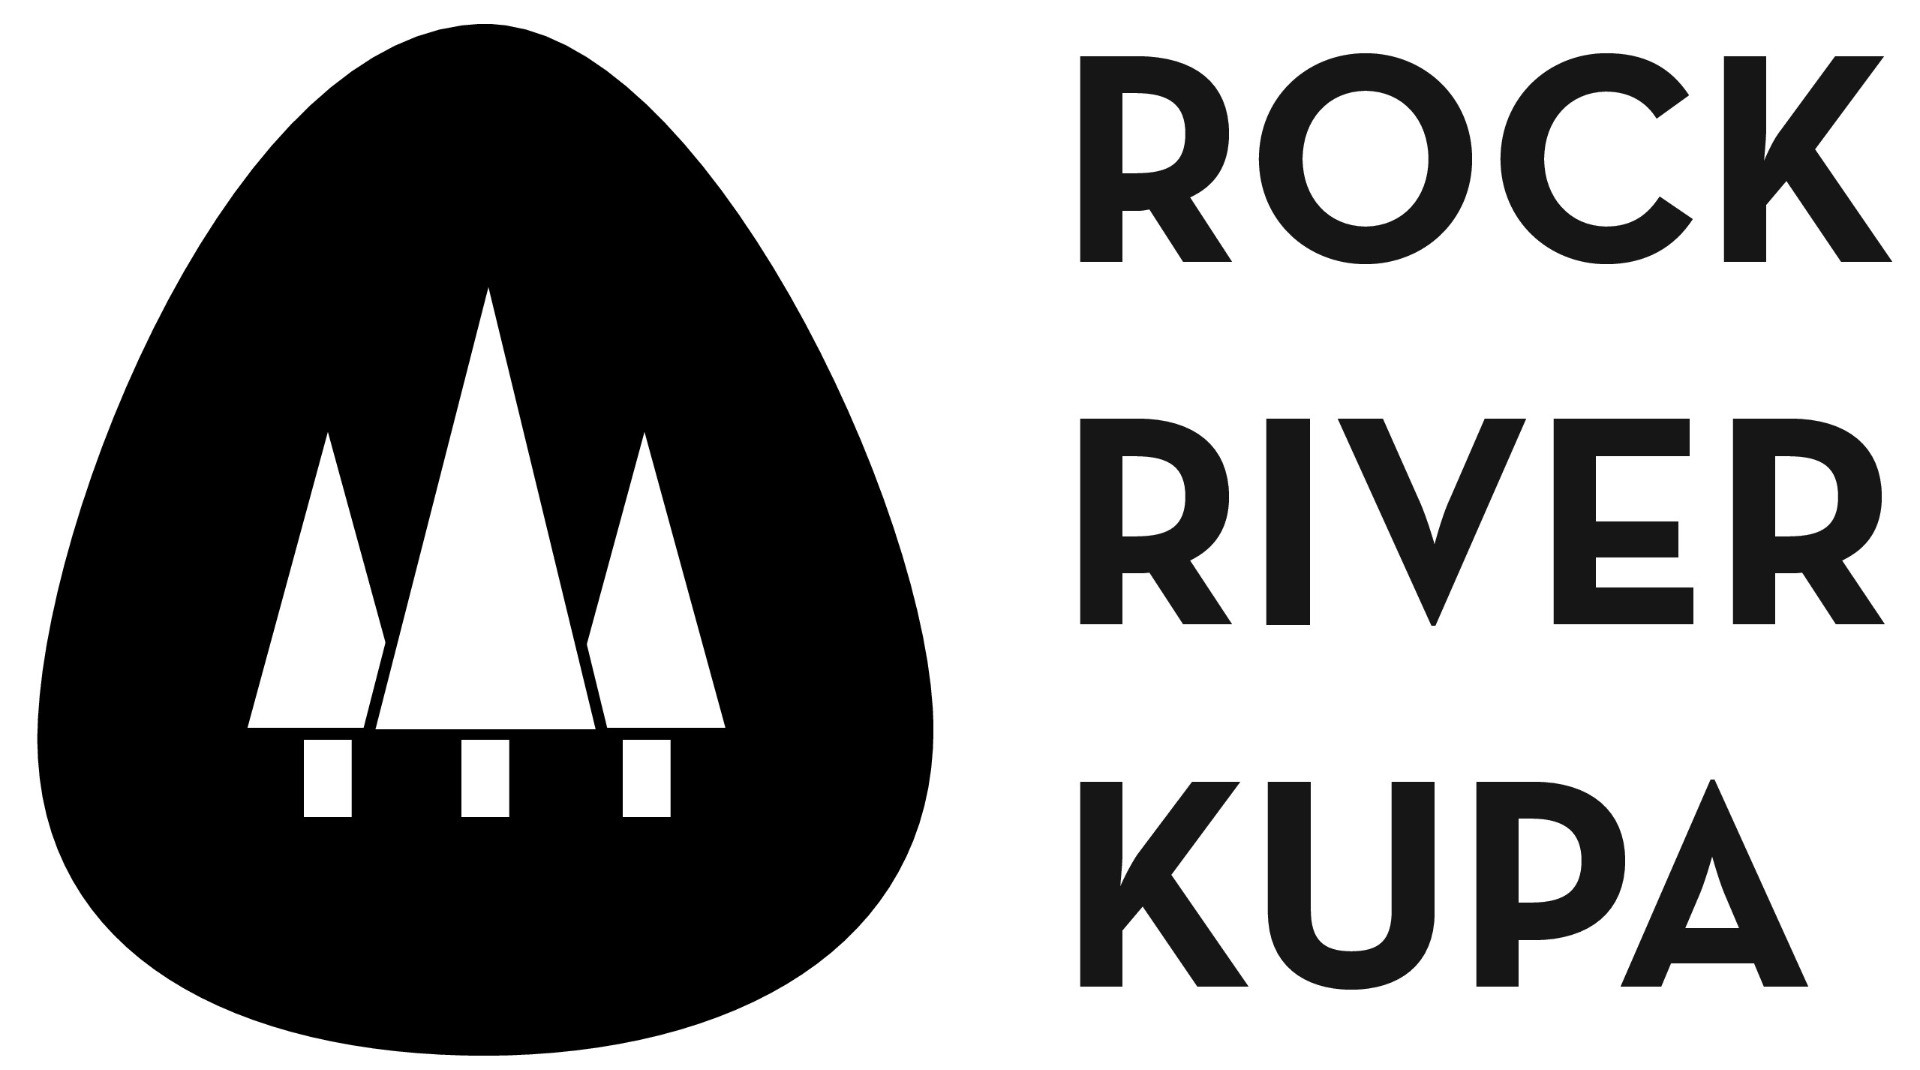 ROCK RIVER KUPA (family resort)